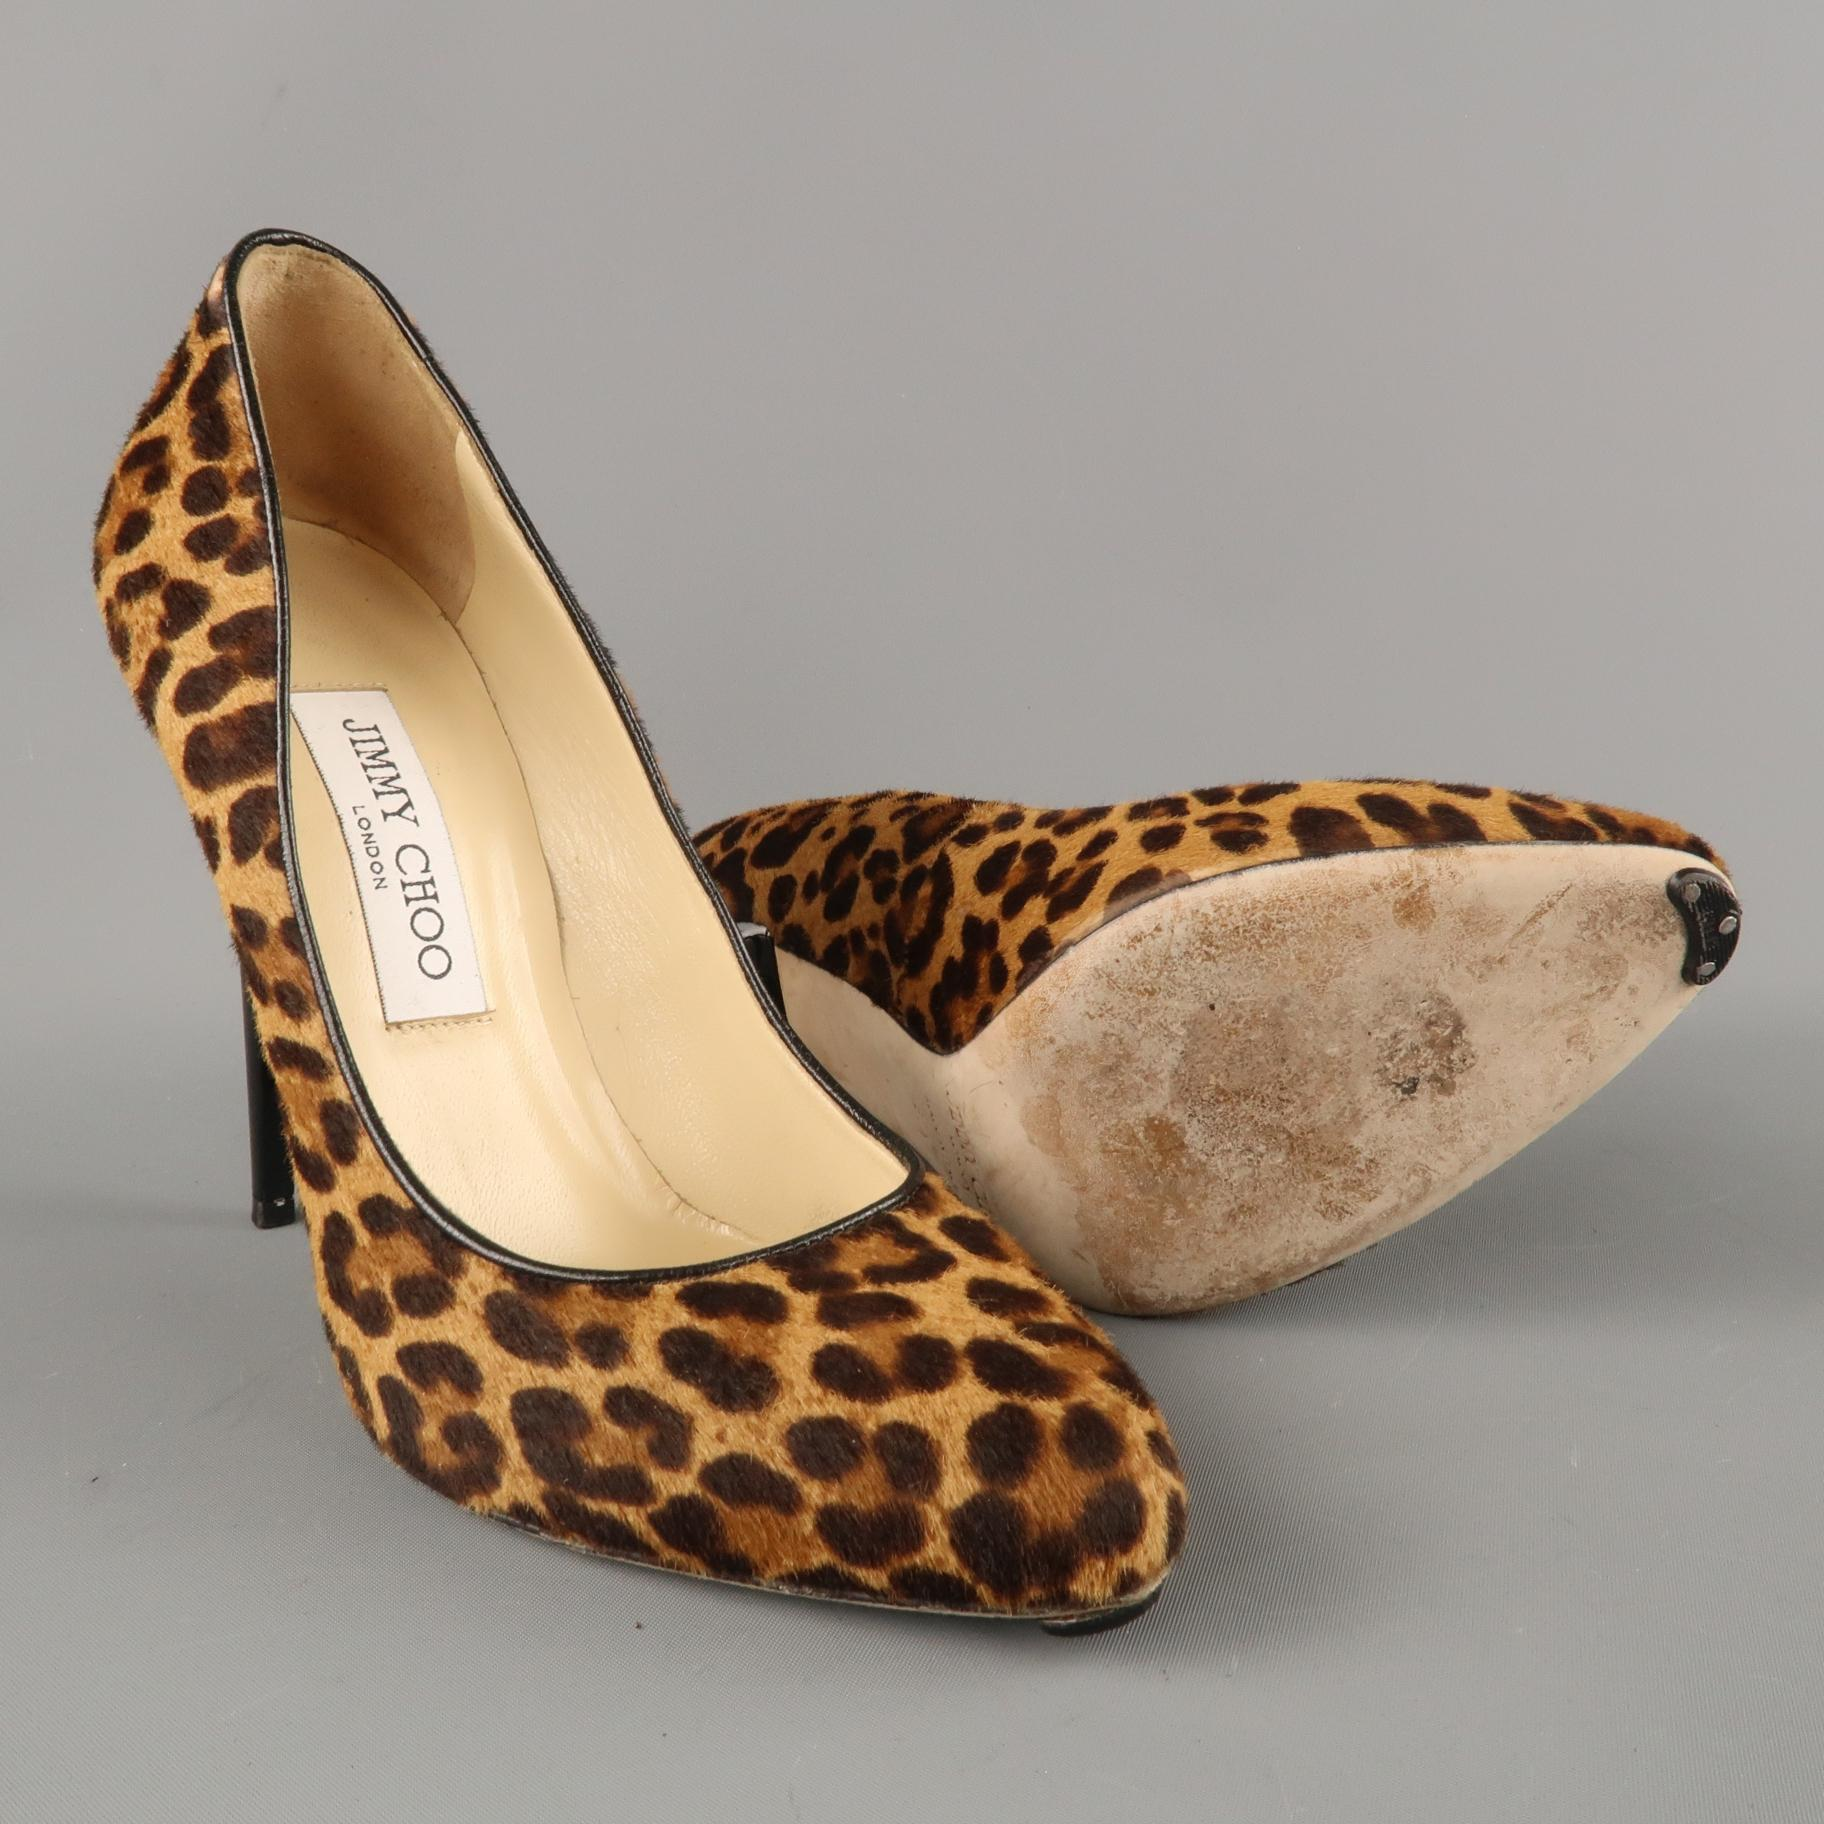 7bac694d7a15 JIMMY CHOO Size 7.5 Brown Leopard Print Calf Hair Victoria Pumps For Sale  at 1stdibs